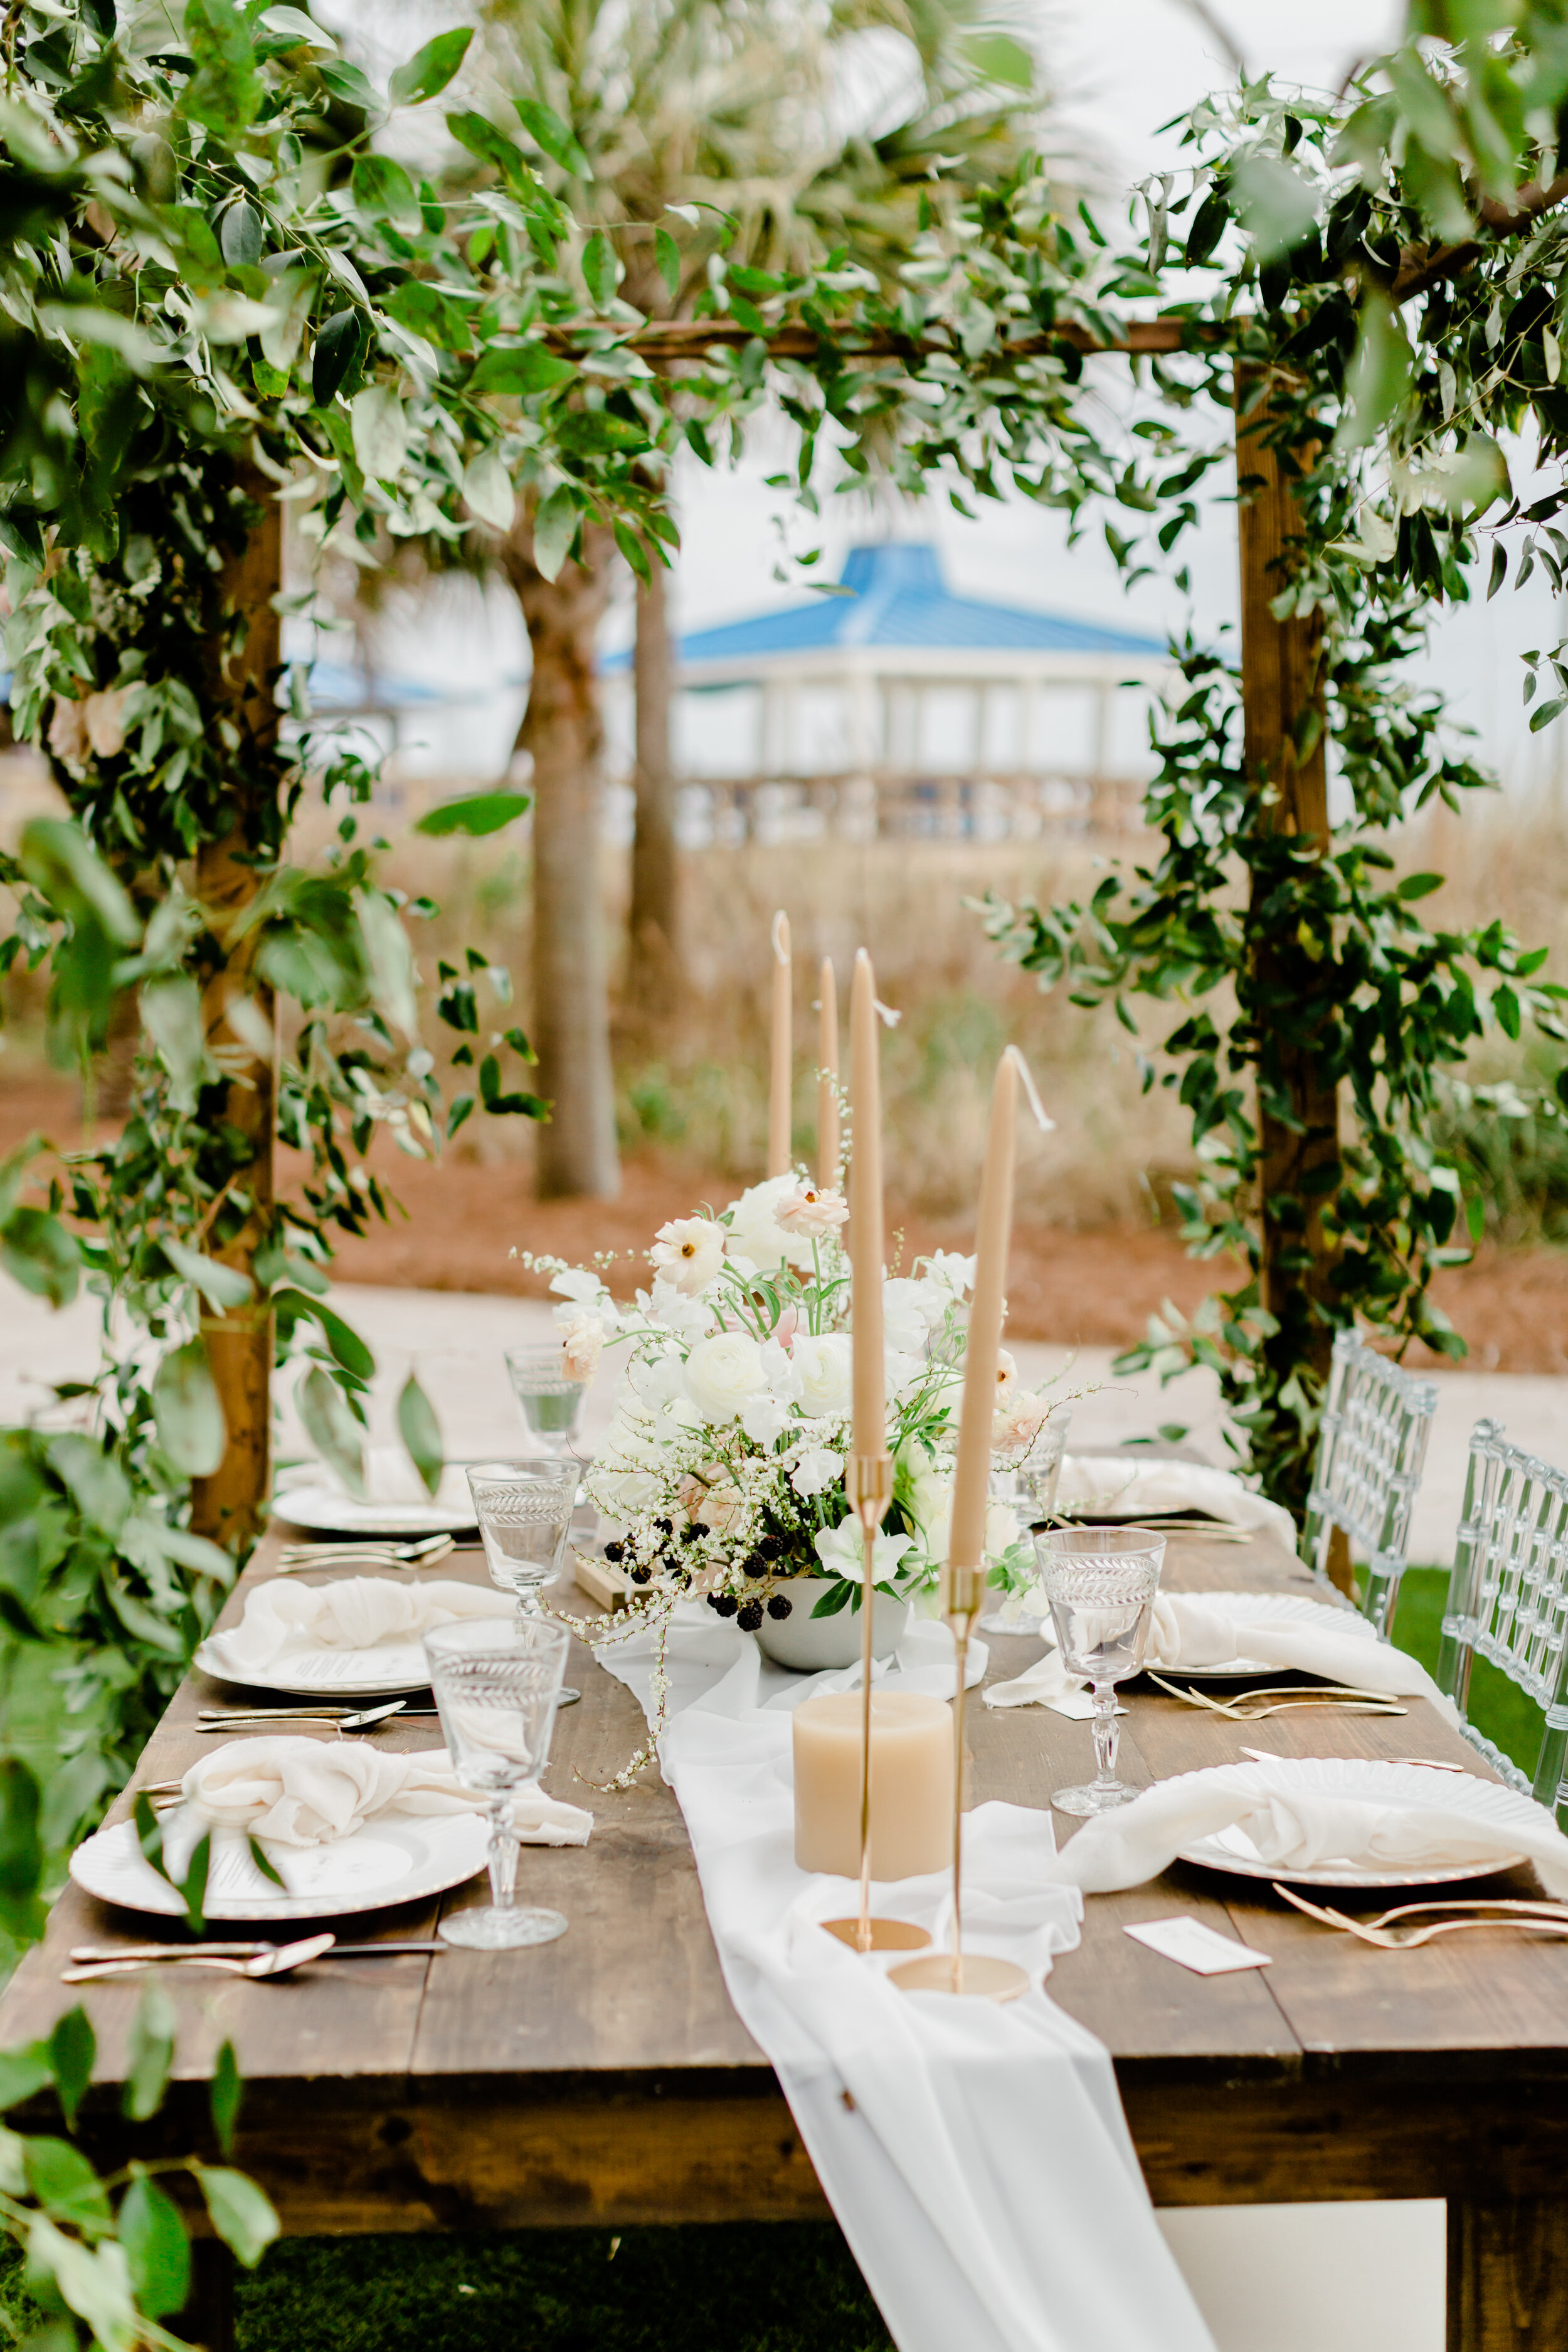 long and flowy white silk table runners for romantic, elegant, and sophisticated wedding tablescape inspiration